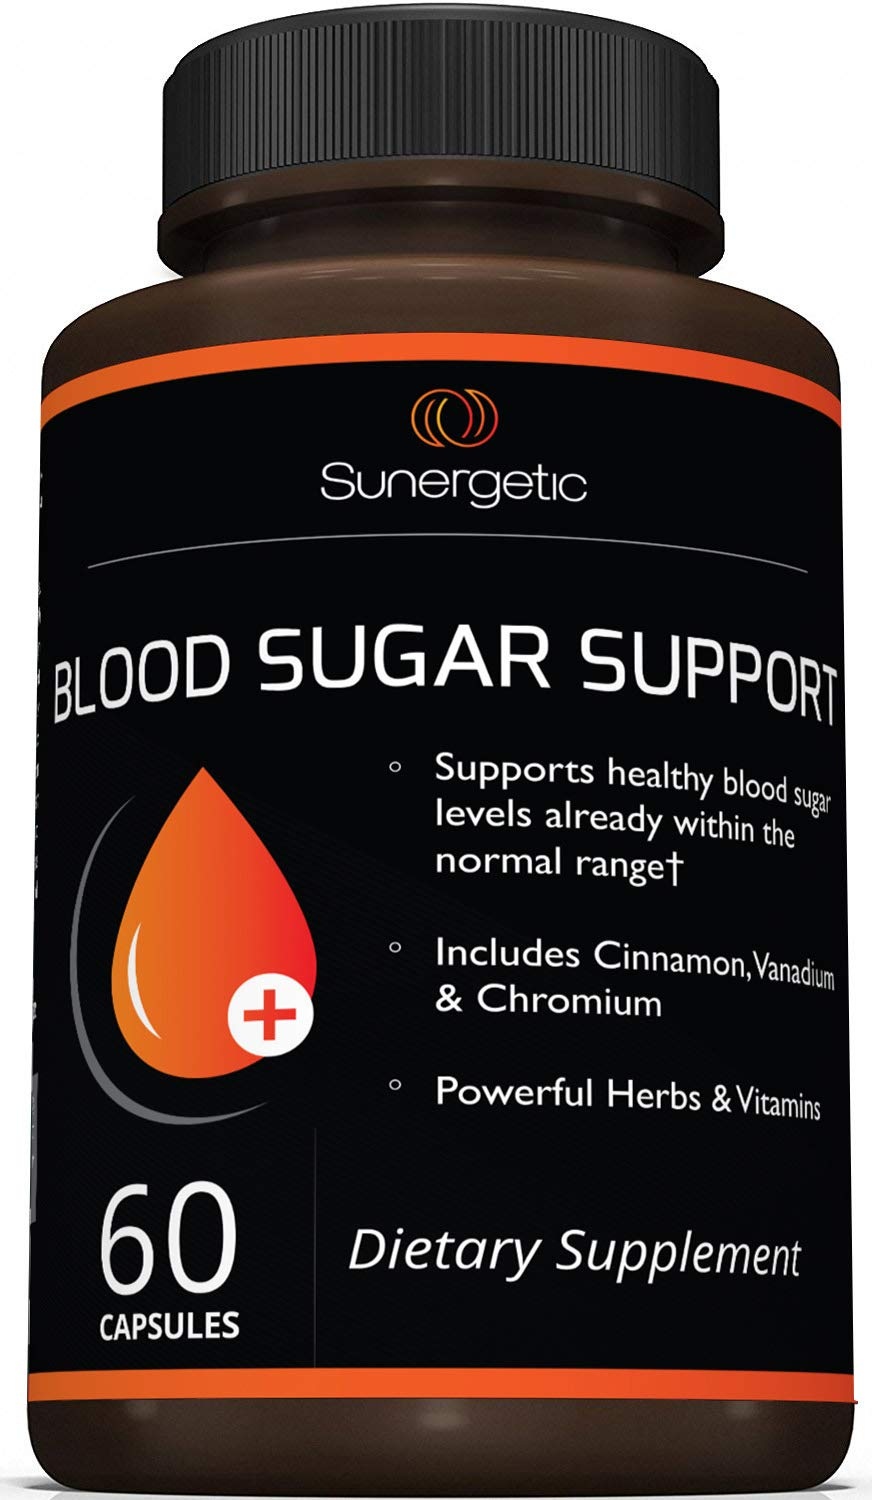 Premium Blood Sugar Support Supplement - Helps Support Healthy Blood Sugar & Glucose Levels - Includes Bitter Melon Extract, Vanadium, Chromium, Cinnamon, Alpha Lipoic Acid (60 Capsules) by Sunergetic